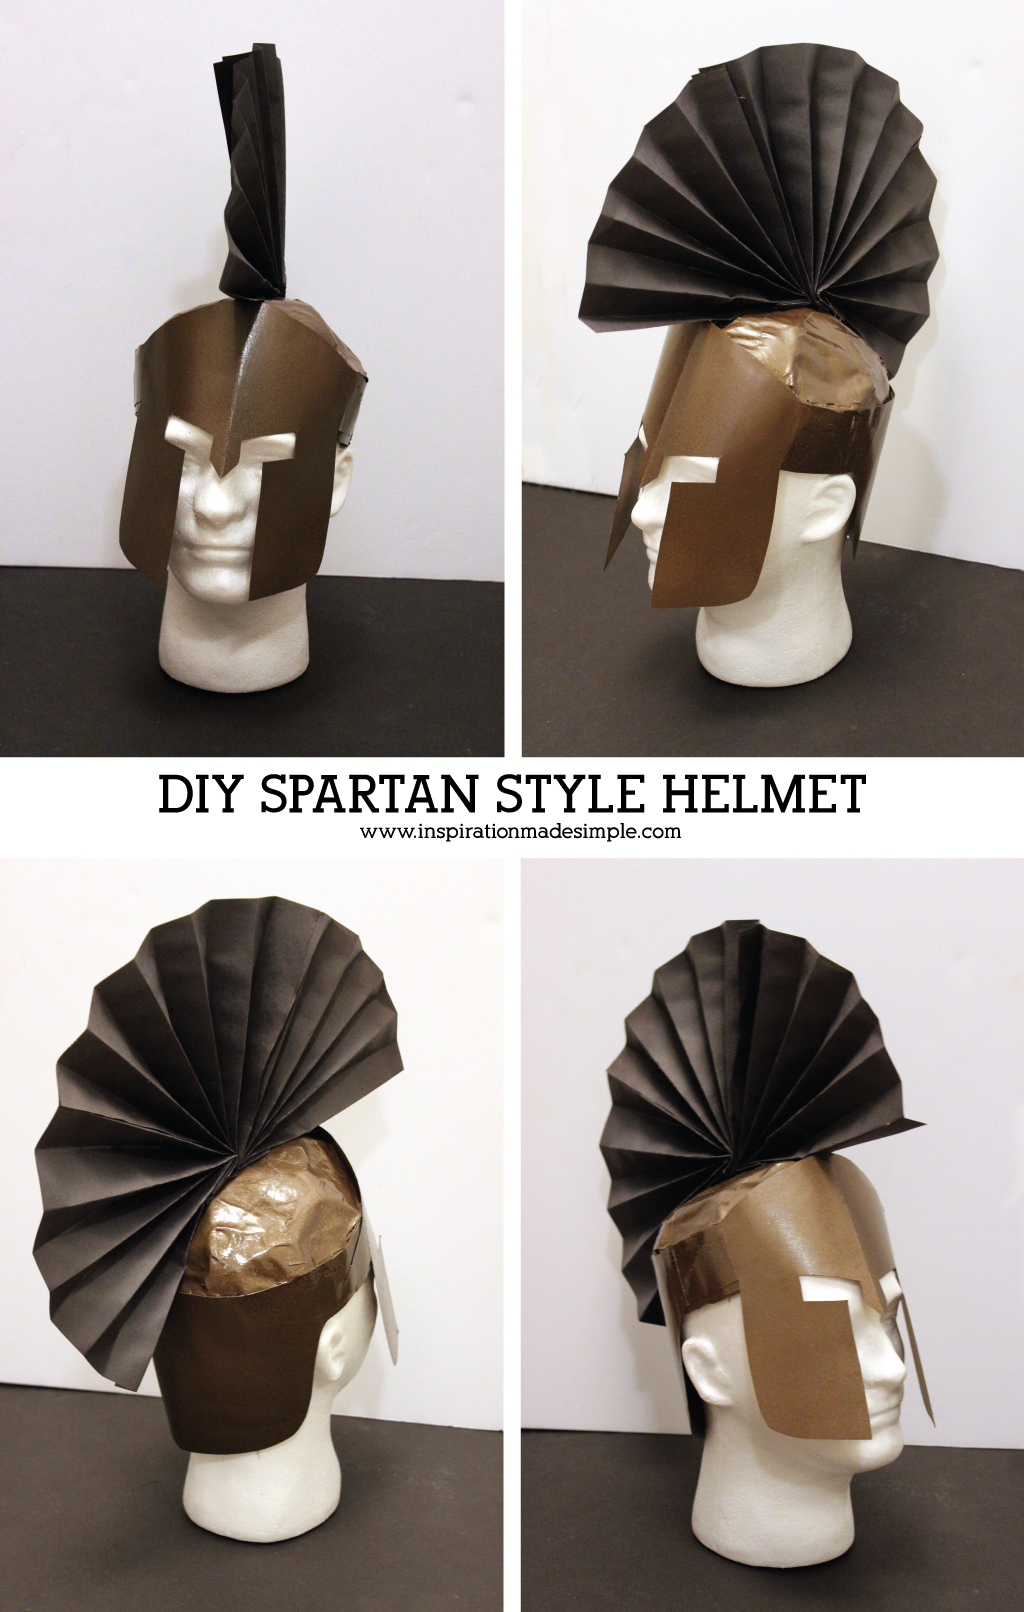 DIY Ares Greek Mythology Costume with Spartan Style Helmet & DIY Ares Greek Mythology Costume - Inspiration Made Simple